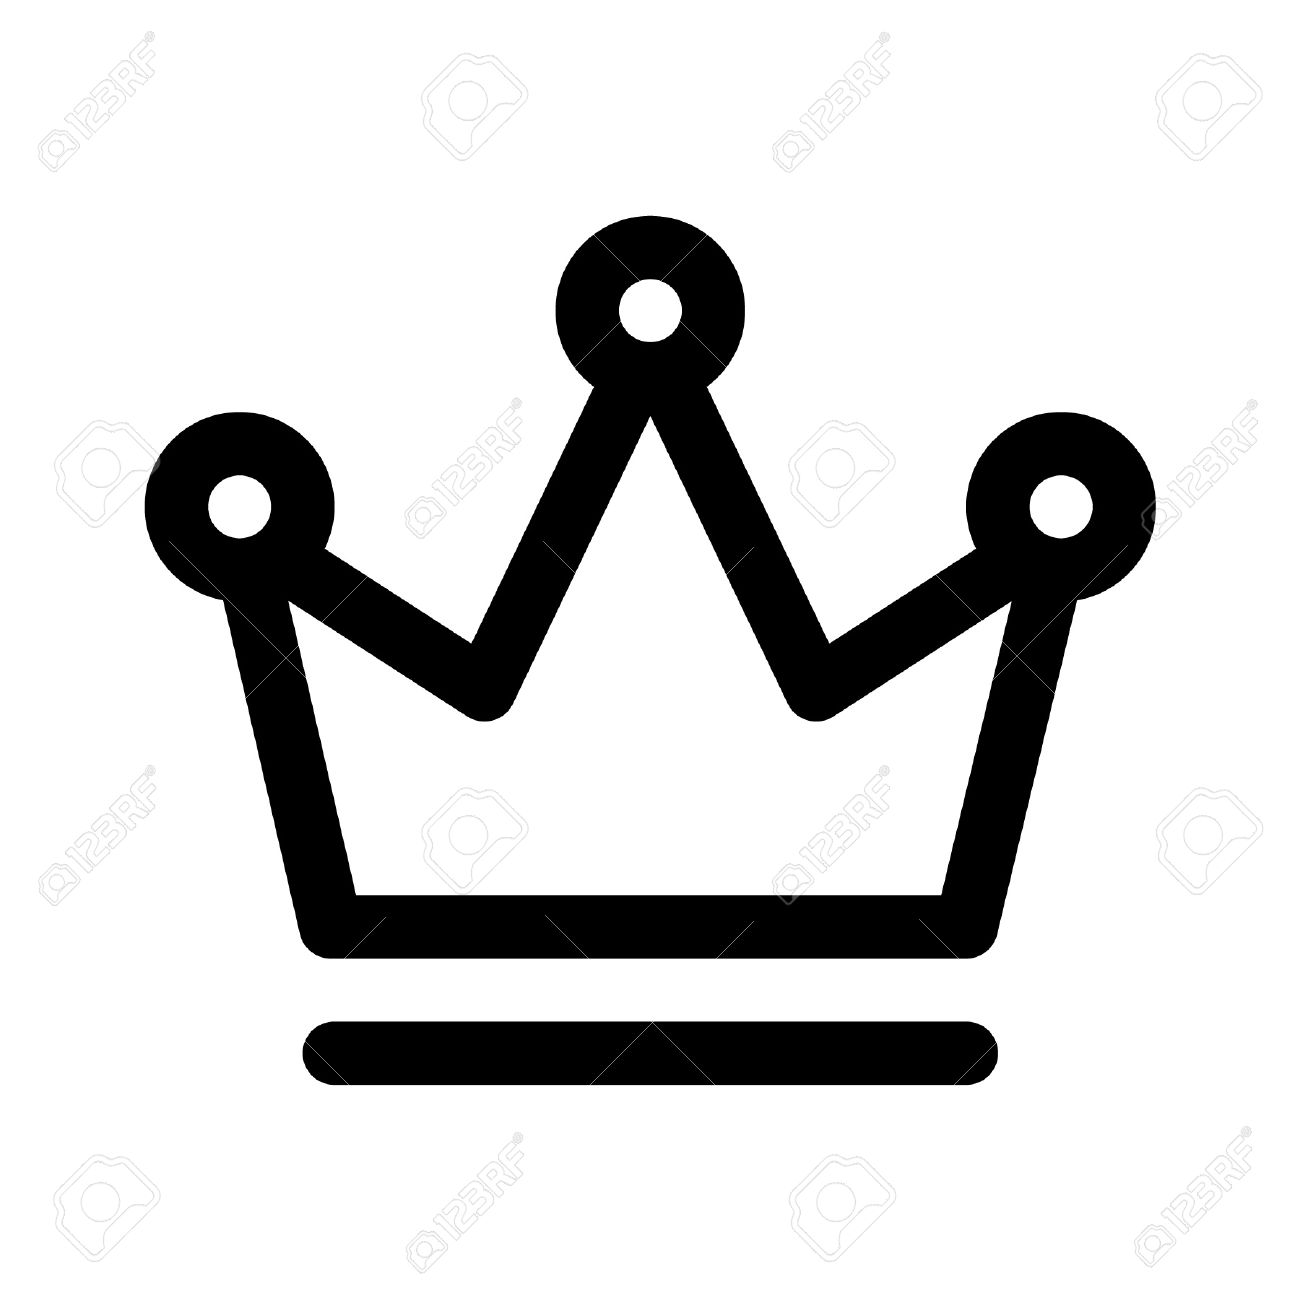 Crown outline logo clipart graphic library Crown Of The King Line Art Icon For Apps And Websites Royalty Free ... graphic library